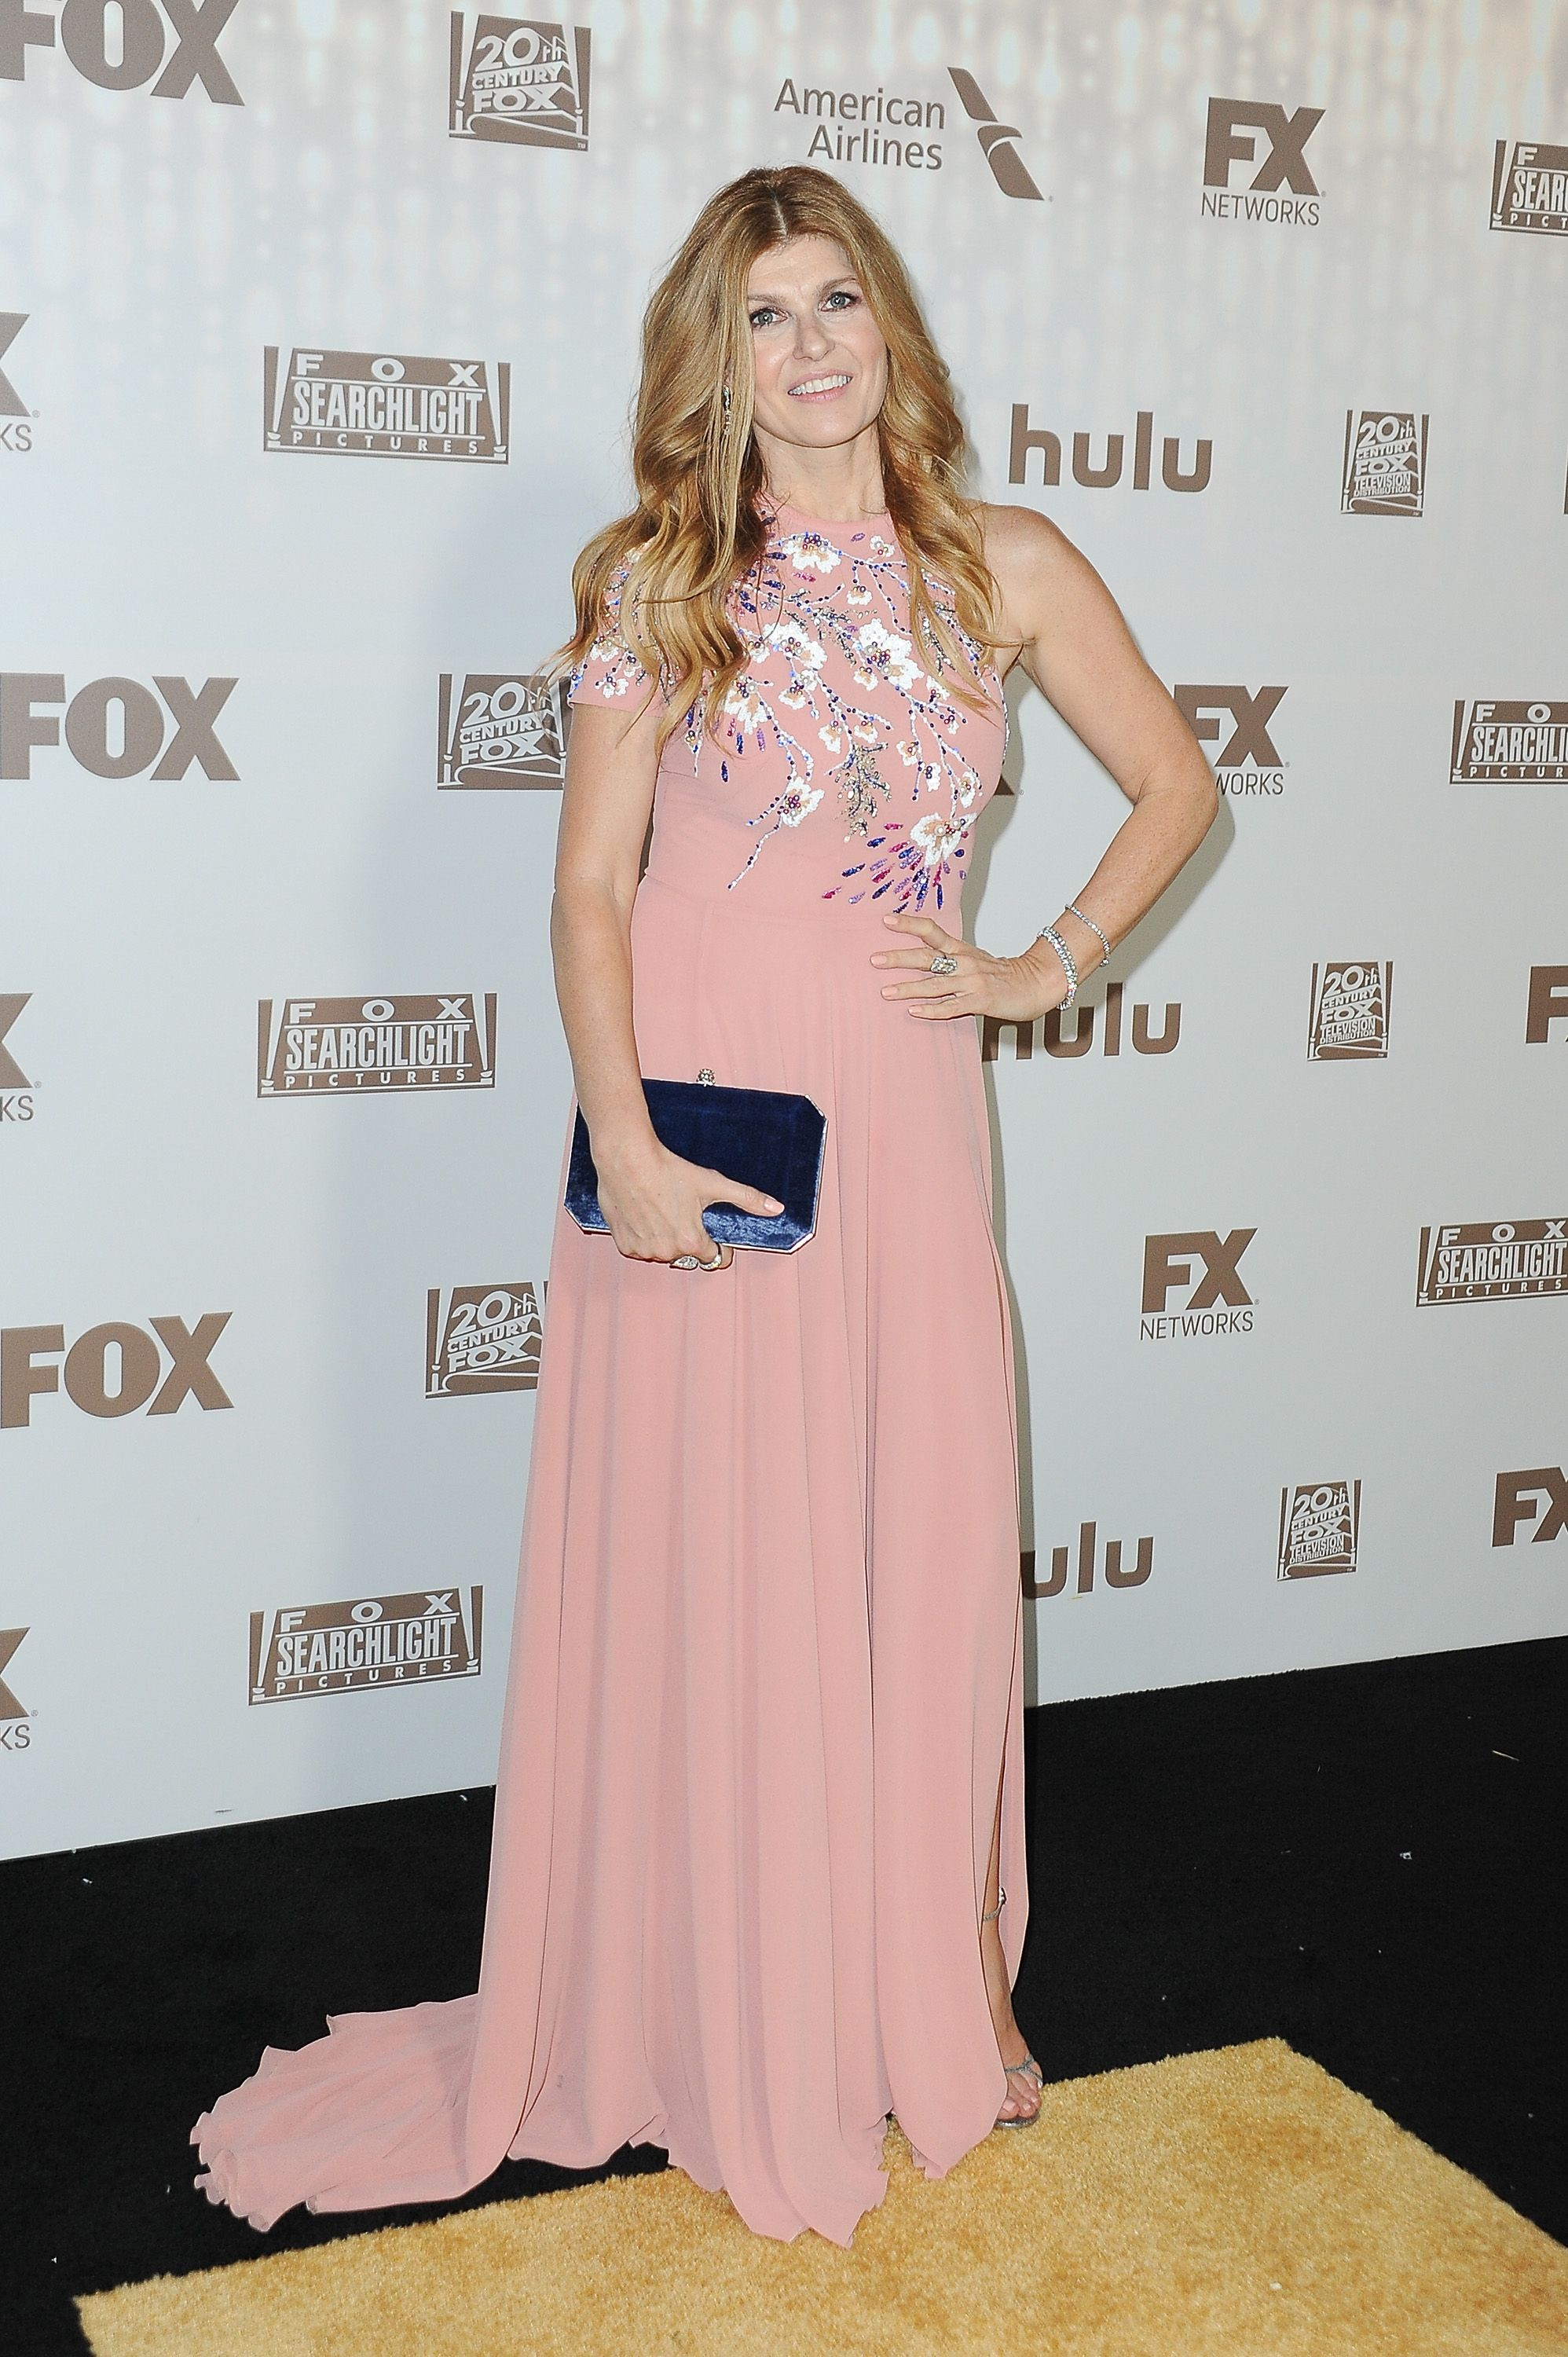 Connie Britton - At Fox and Hulu's Golden Globe After Party.